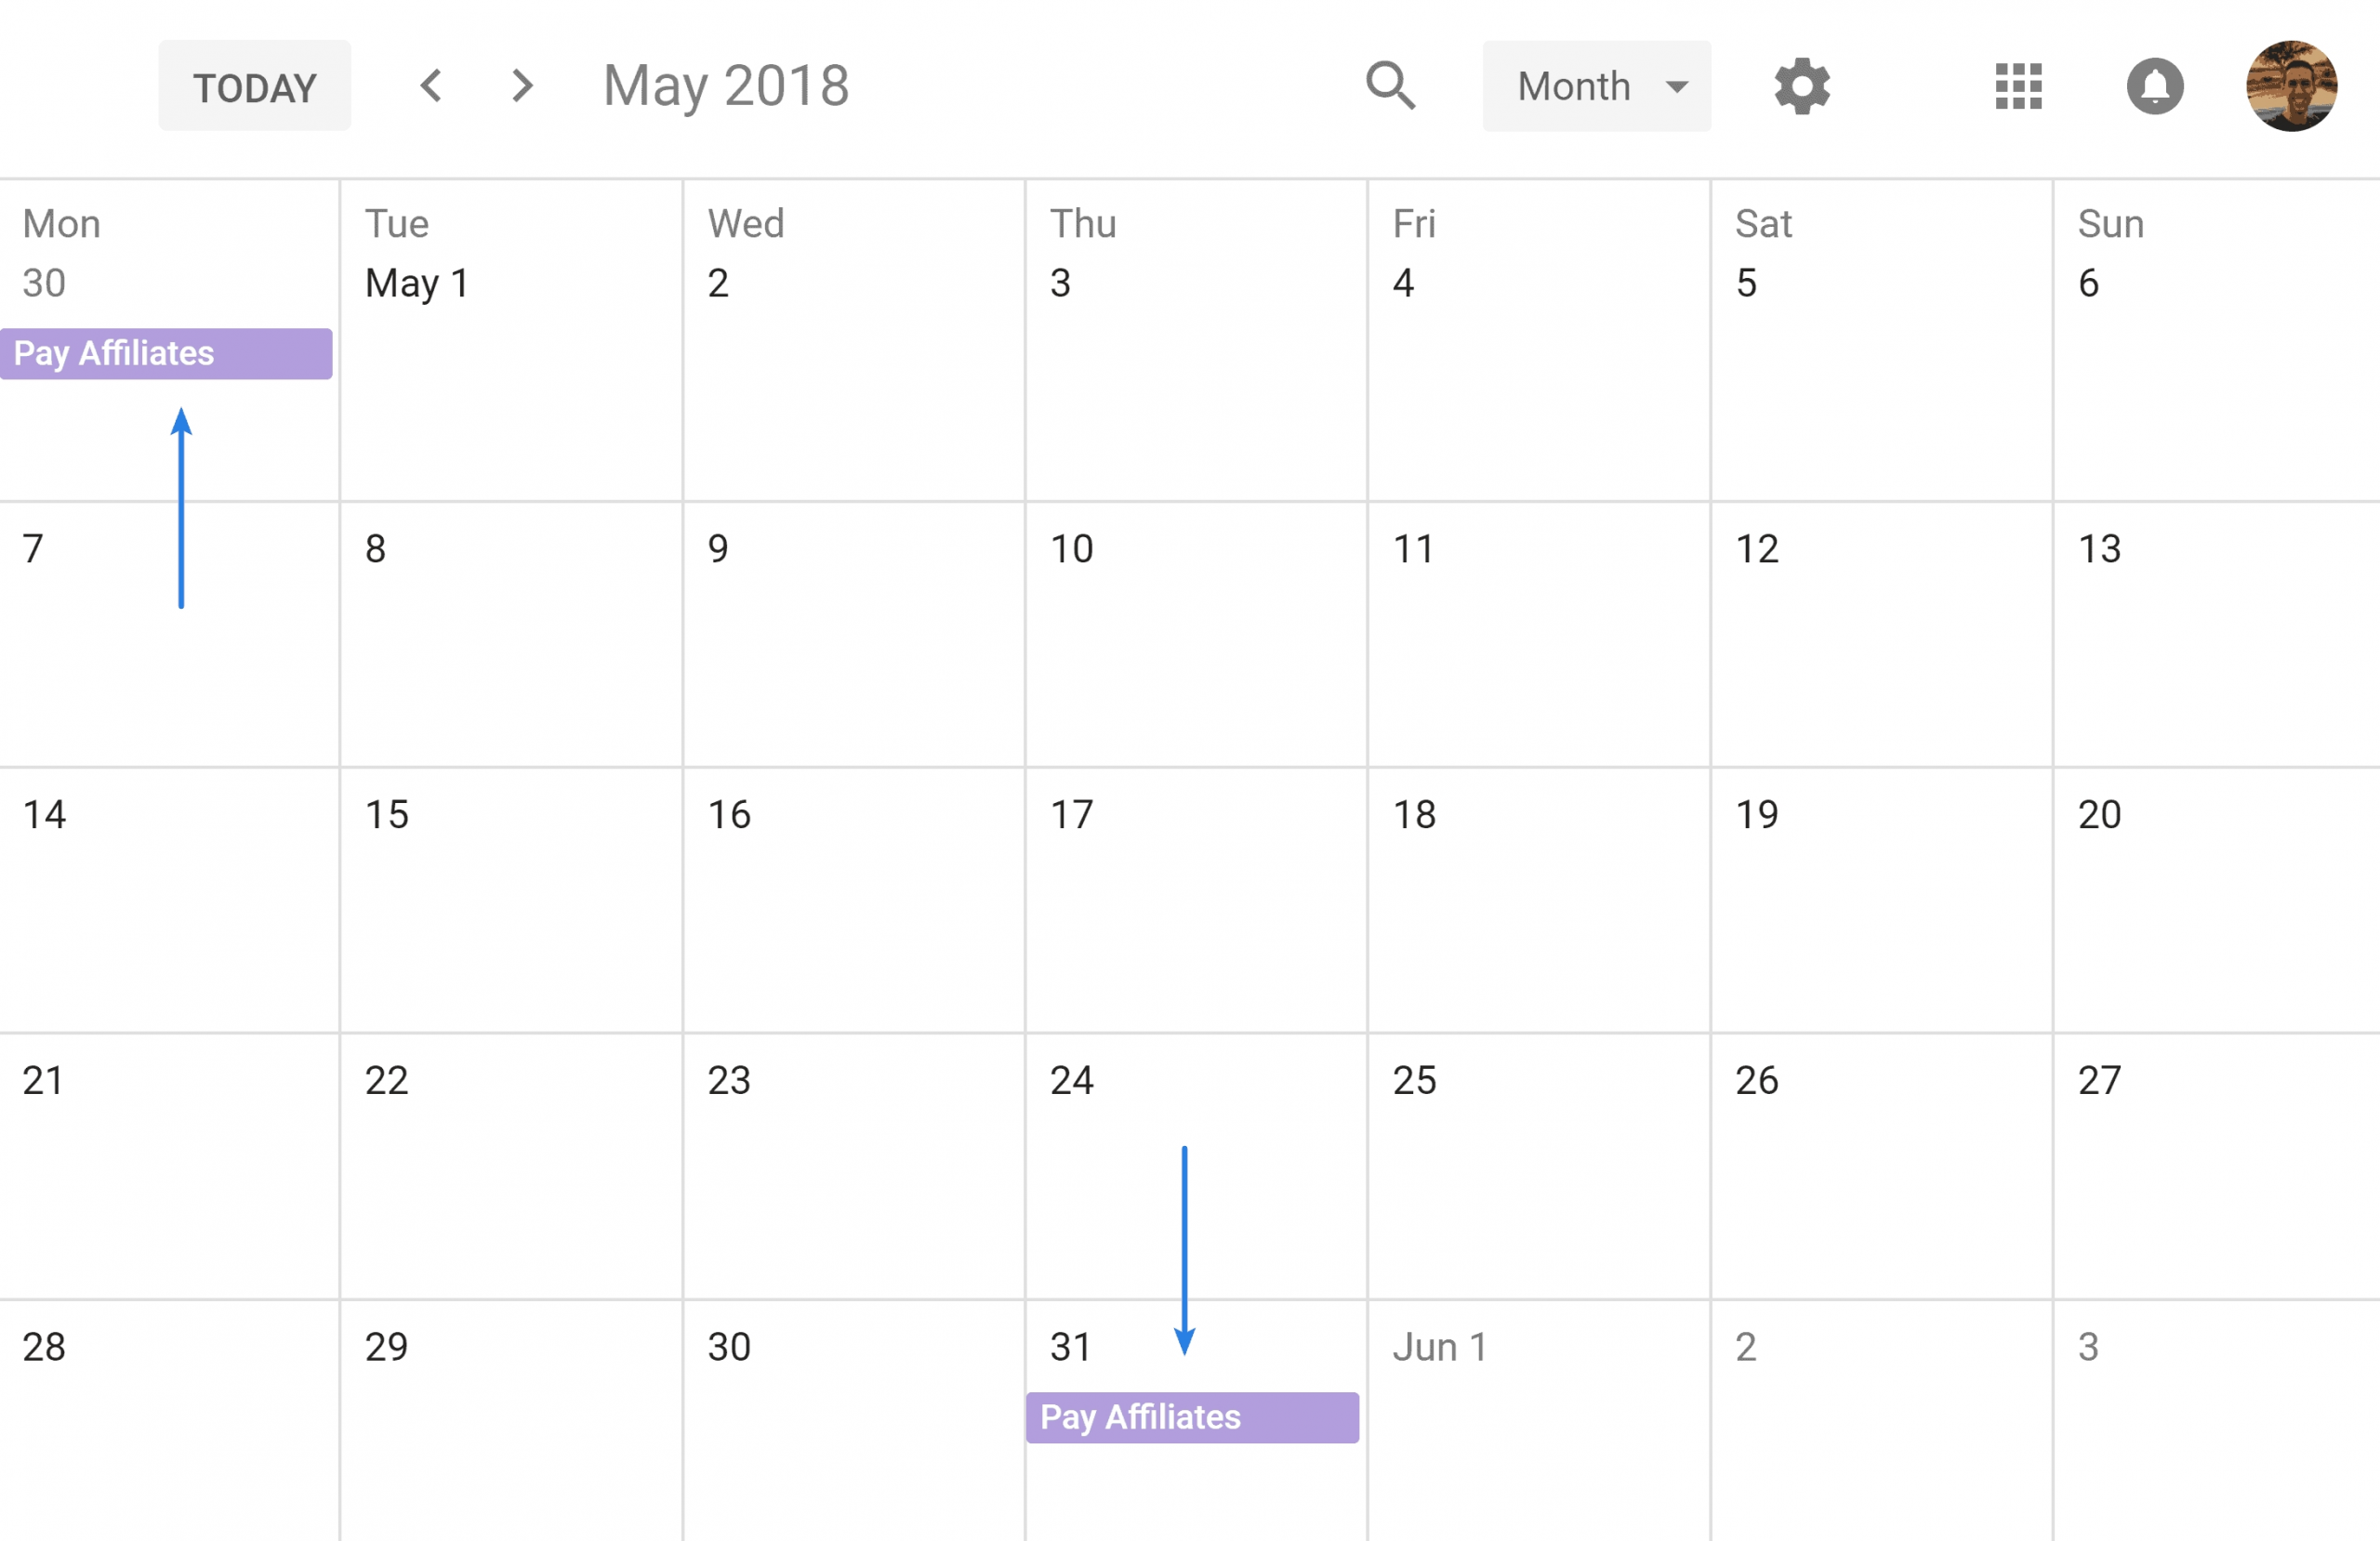 How To Set Up Repeating Event In Google Calendar On Last Day